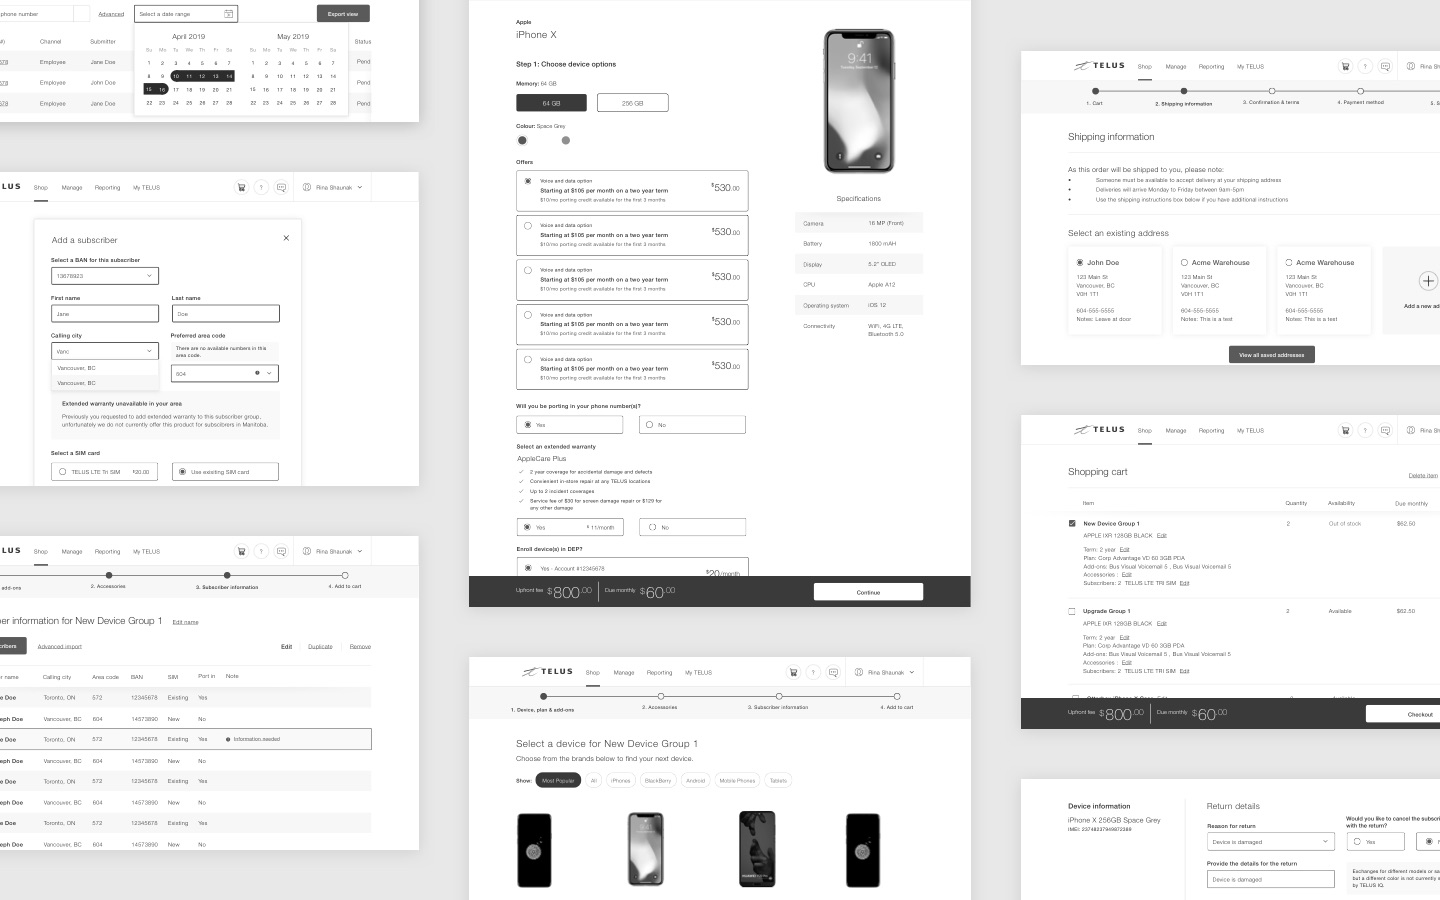 Wireframes of key screens across the TELUS IQ purchase flow